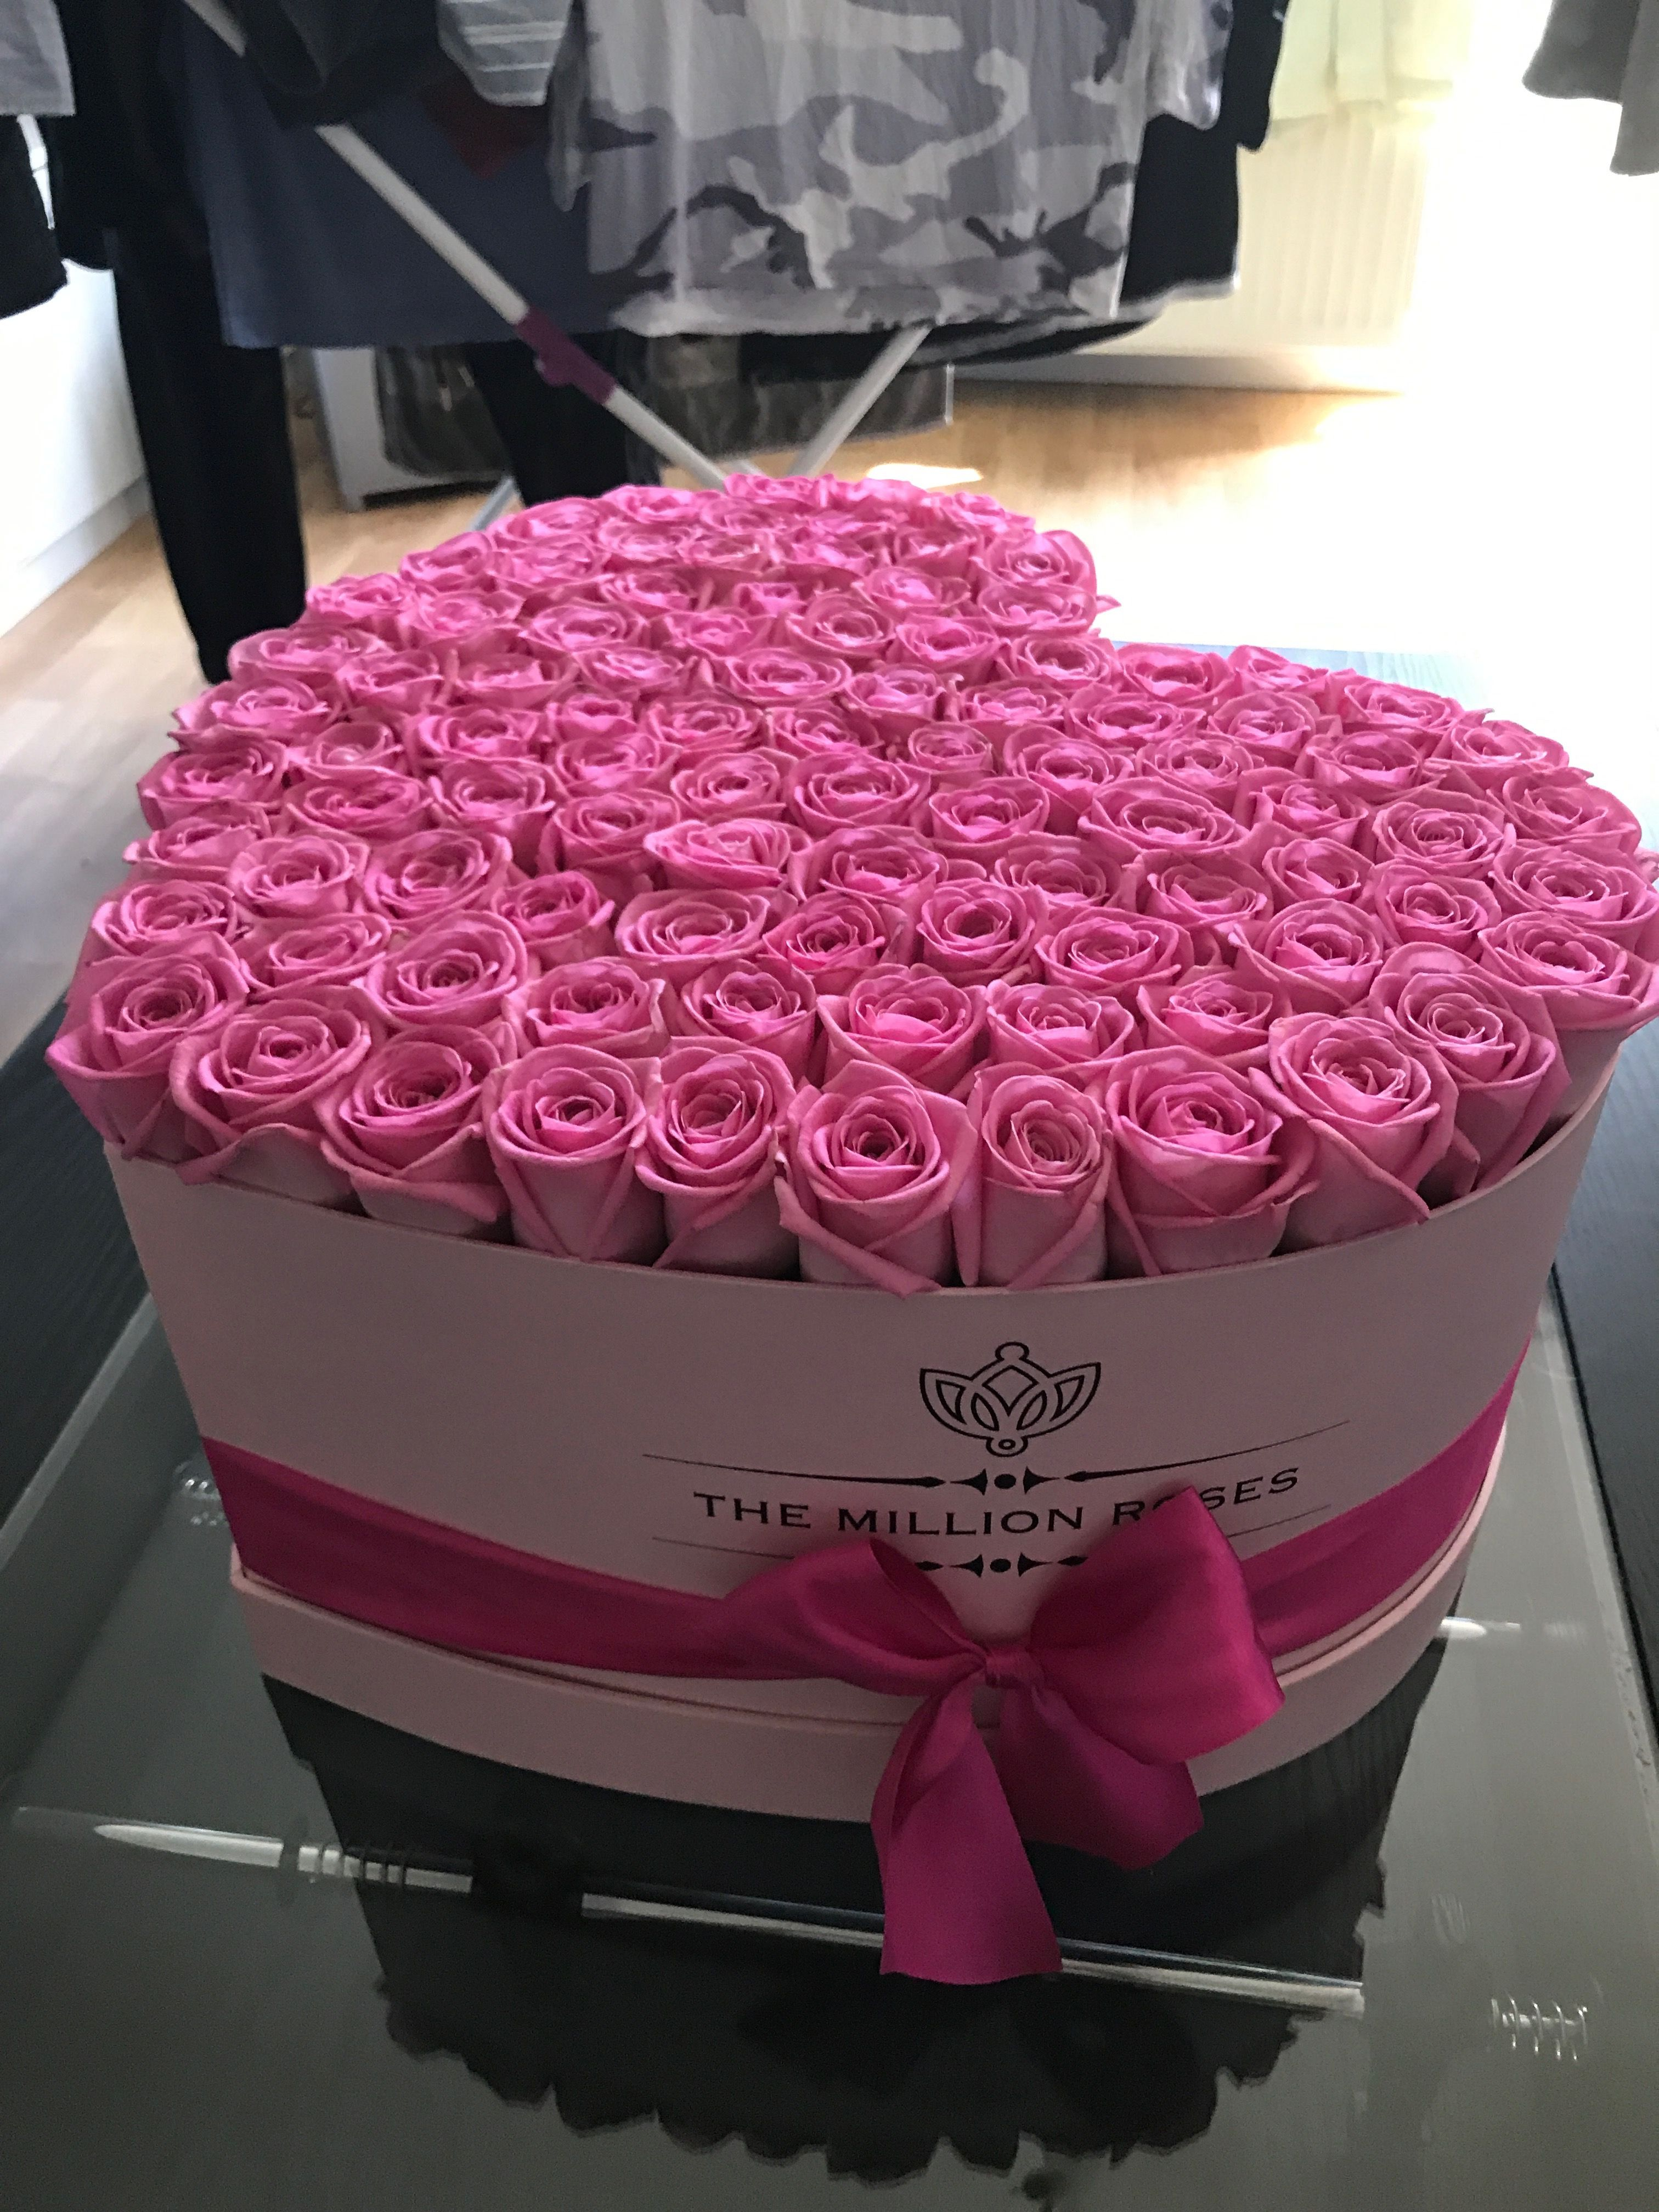 The Million Roses Most Beautiful Flowers Ever For My Birthday Thank